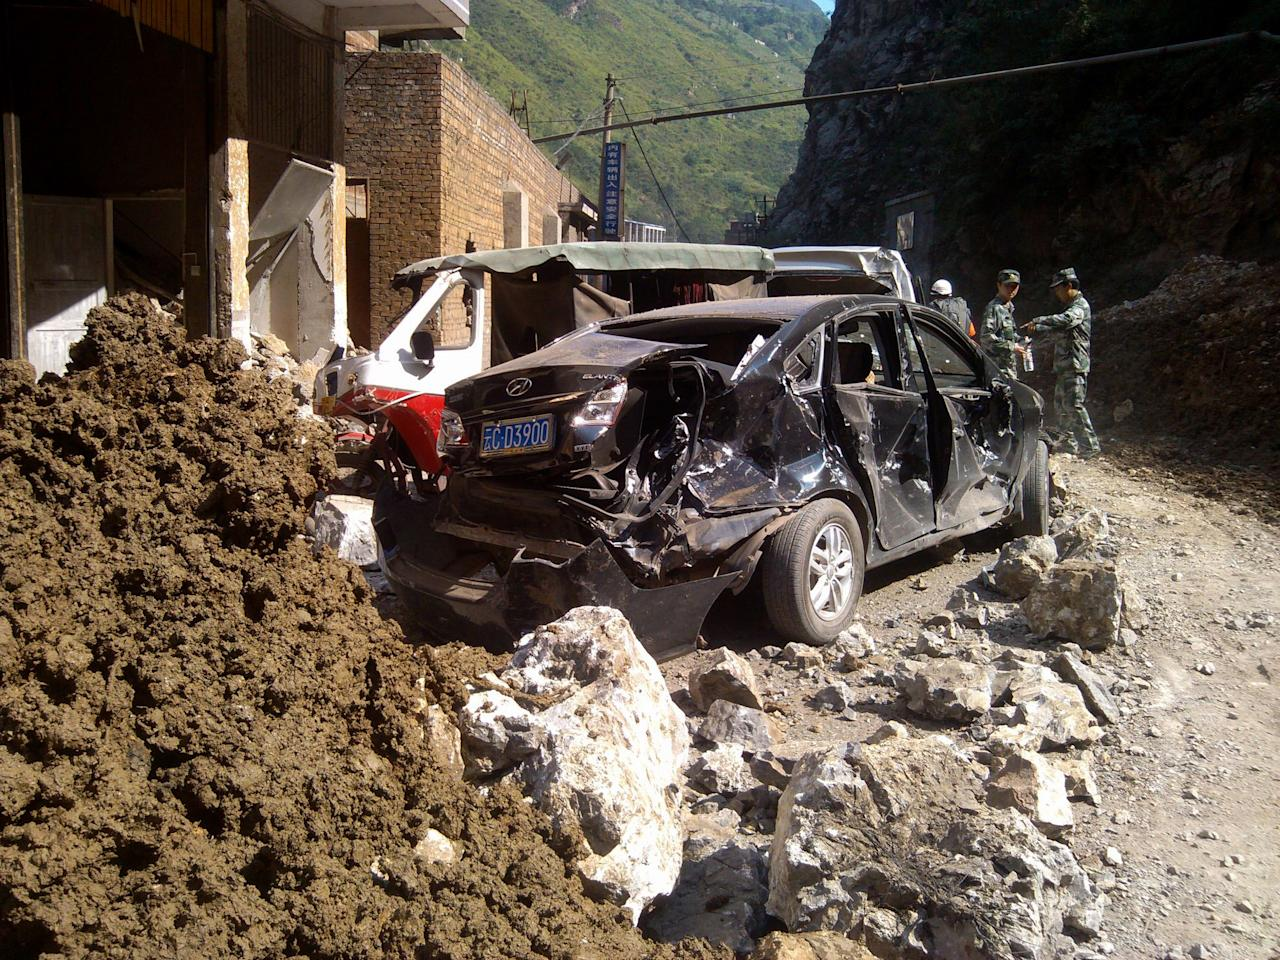 In this photo provided by China's Xinhua News Agency, damaged cars are seen in Luozehe town, Yiliang County, southwest China's Yunnan Province, Friday, Sept. 7, 2012. A series of earthquakes collapsed houses and triggered landslides in a remote mountainous part of southwestern China on Friday, killing dozens of people with the toll expected to rise. Damage was preventing rescuers from reaching some outlying areas, and communications were disrupted. (AP Photo/Xinhua, Zhou Hongpeng)